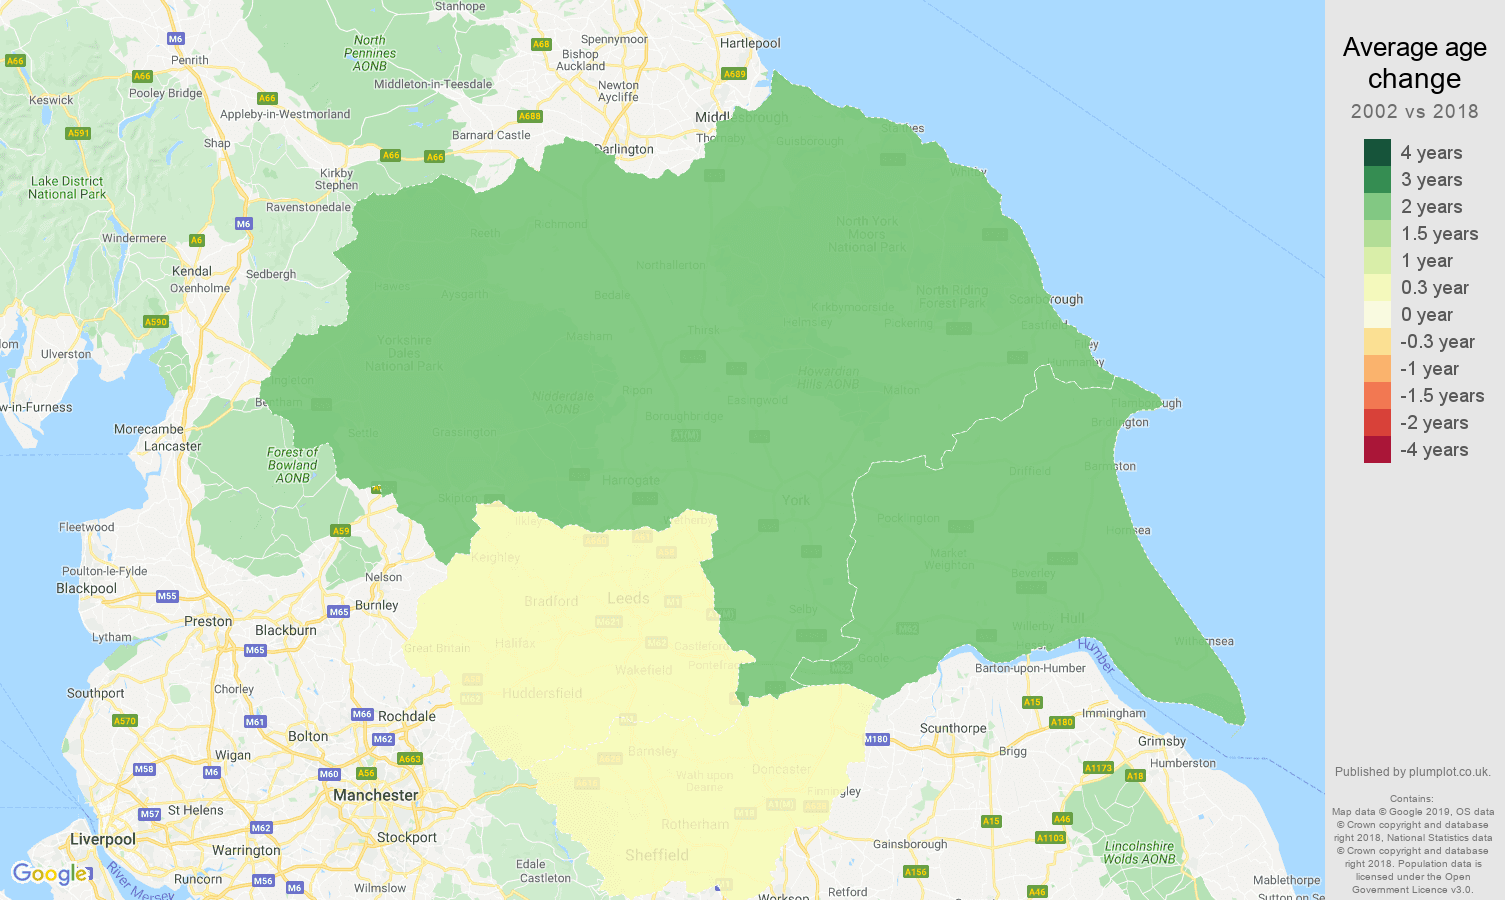 Yorkshire average age change map